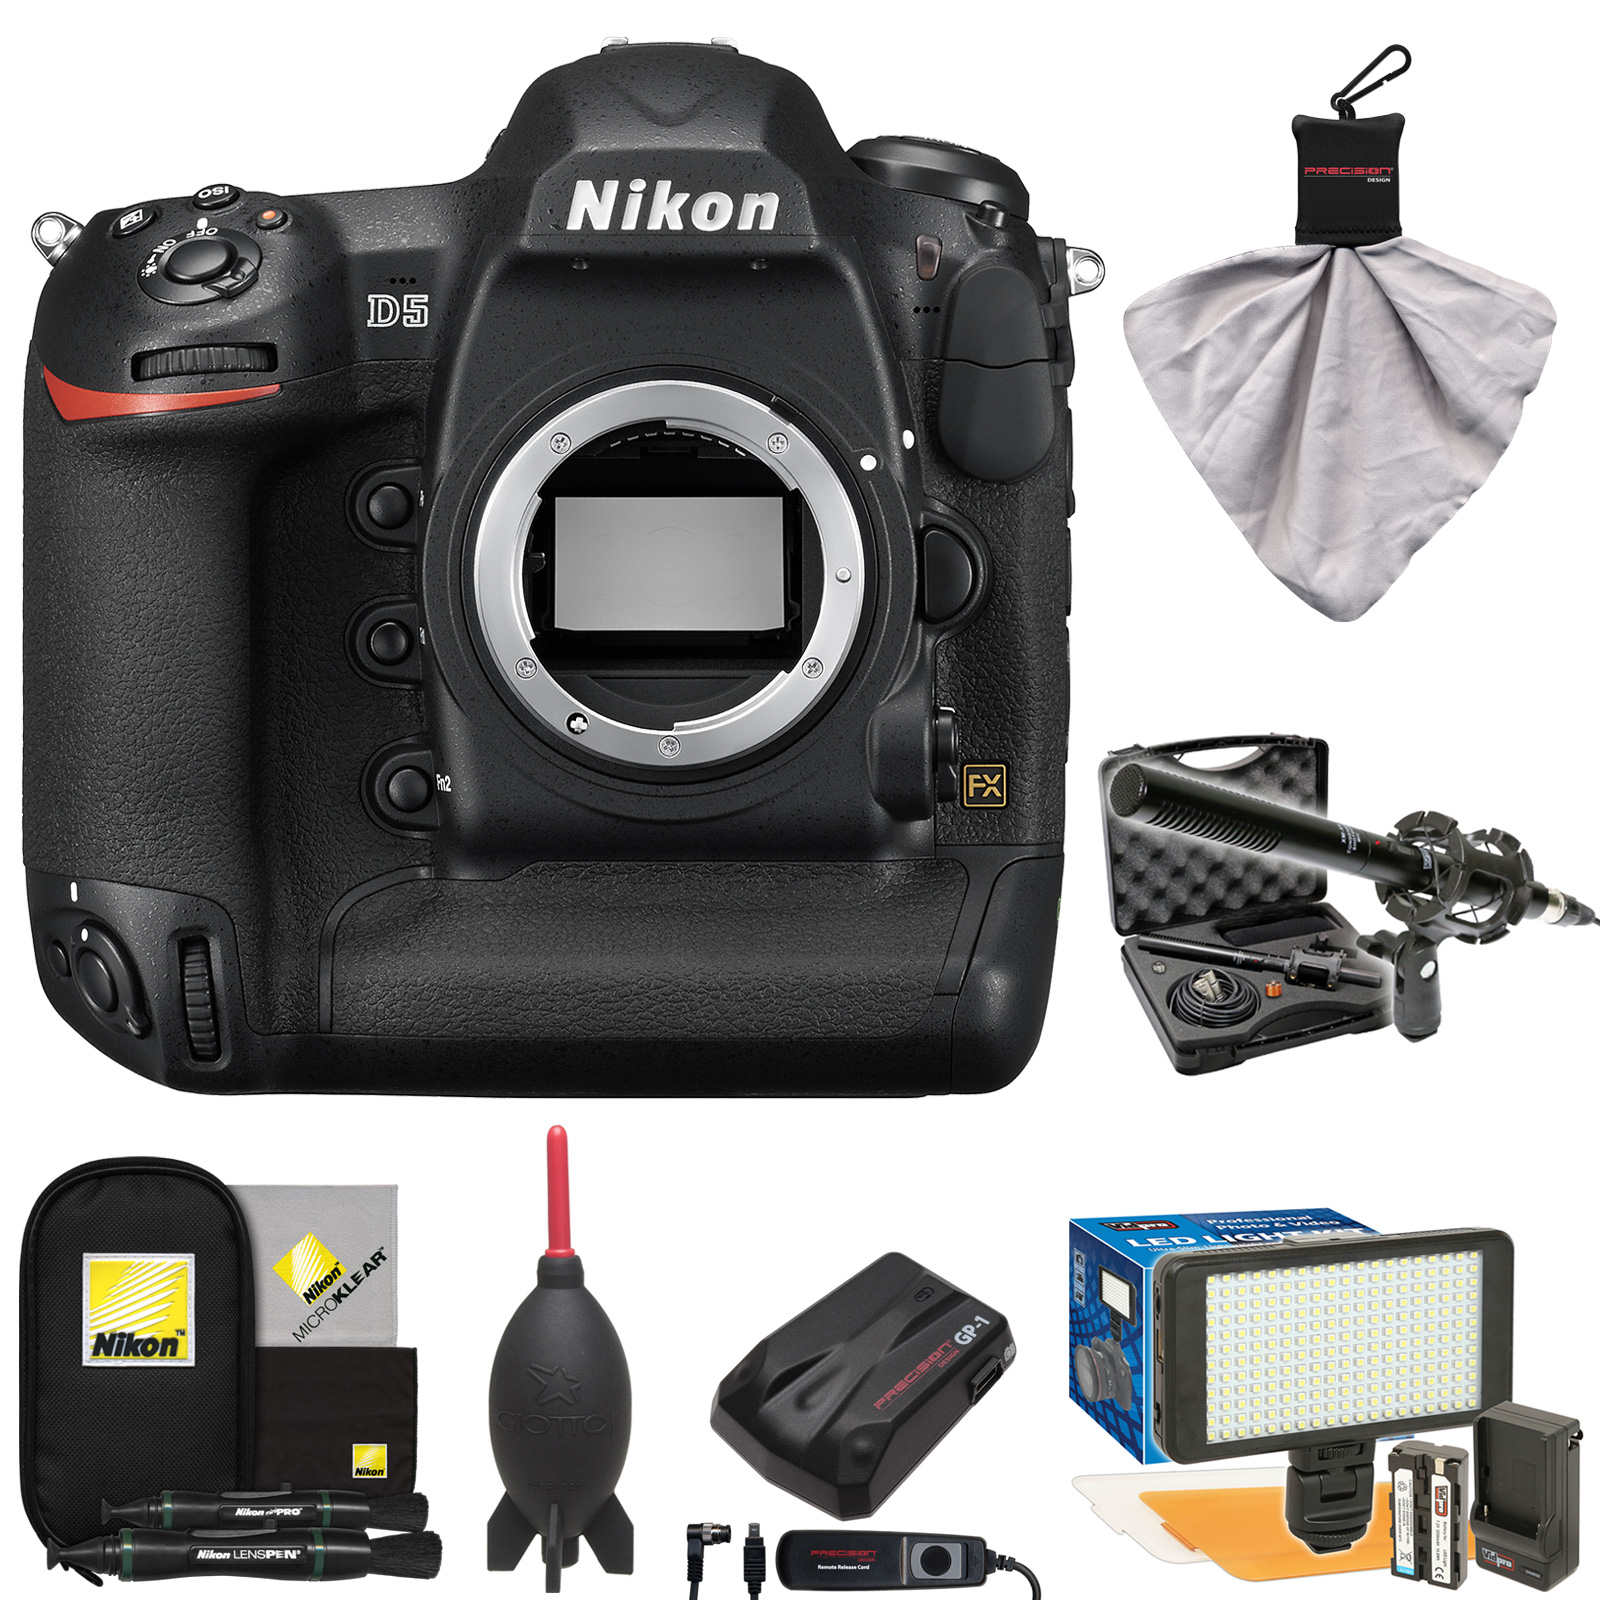 Nikon D5 Digital SLR Camera Body (Dual CF Slots) with Mic...